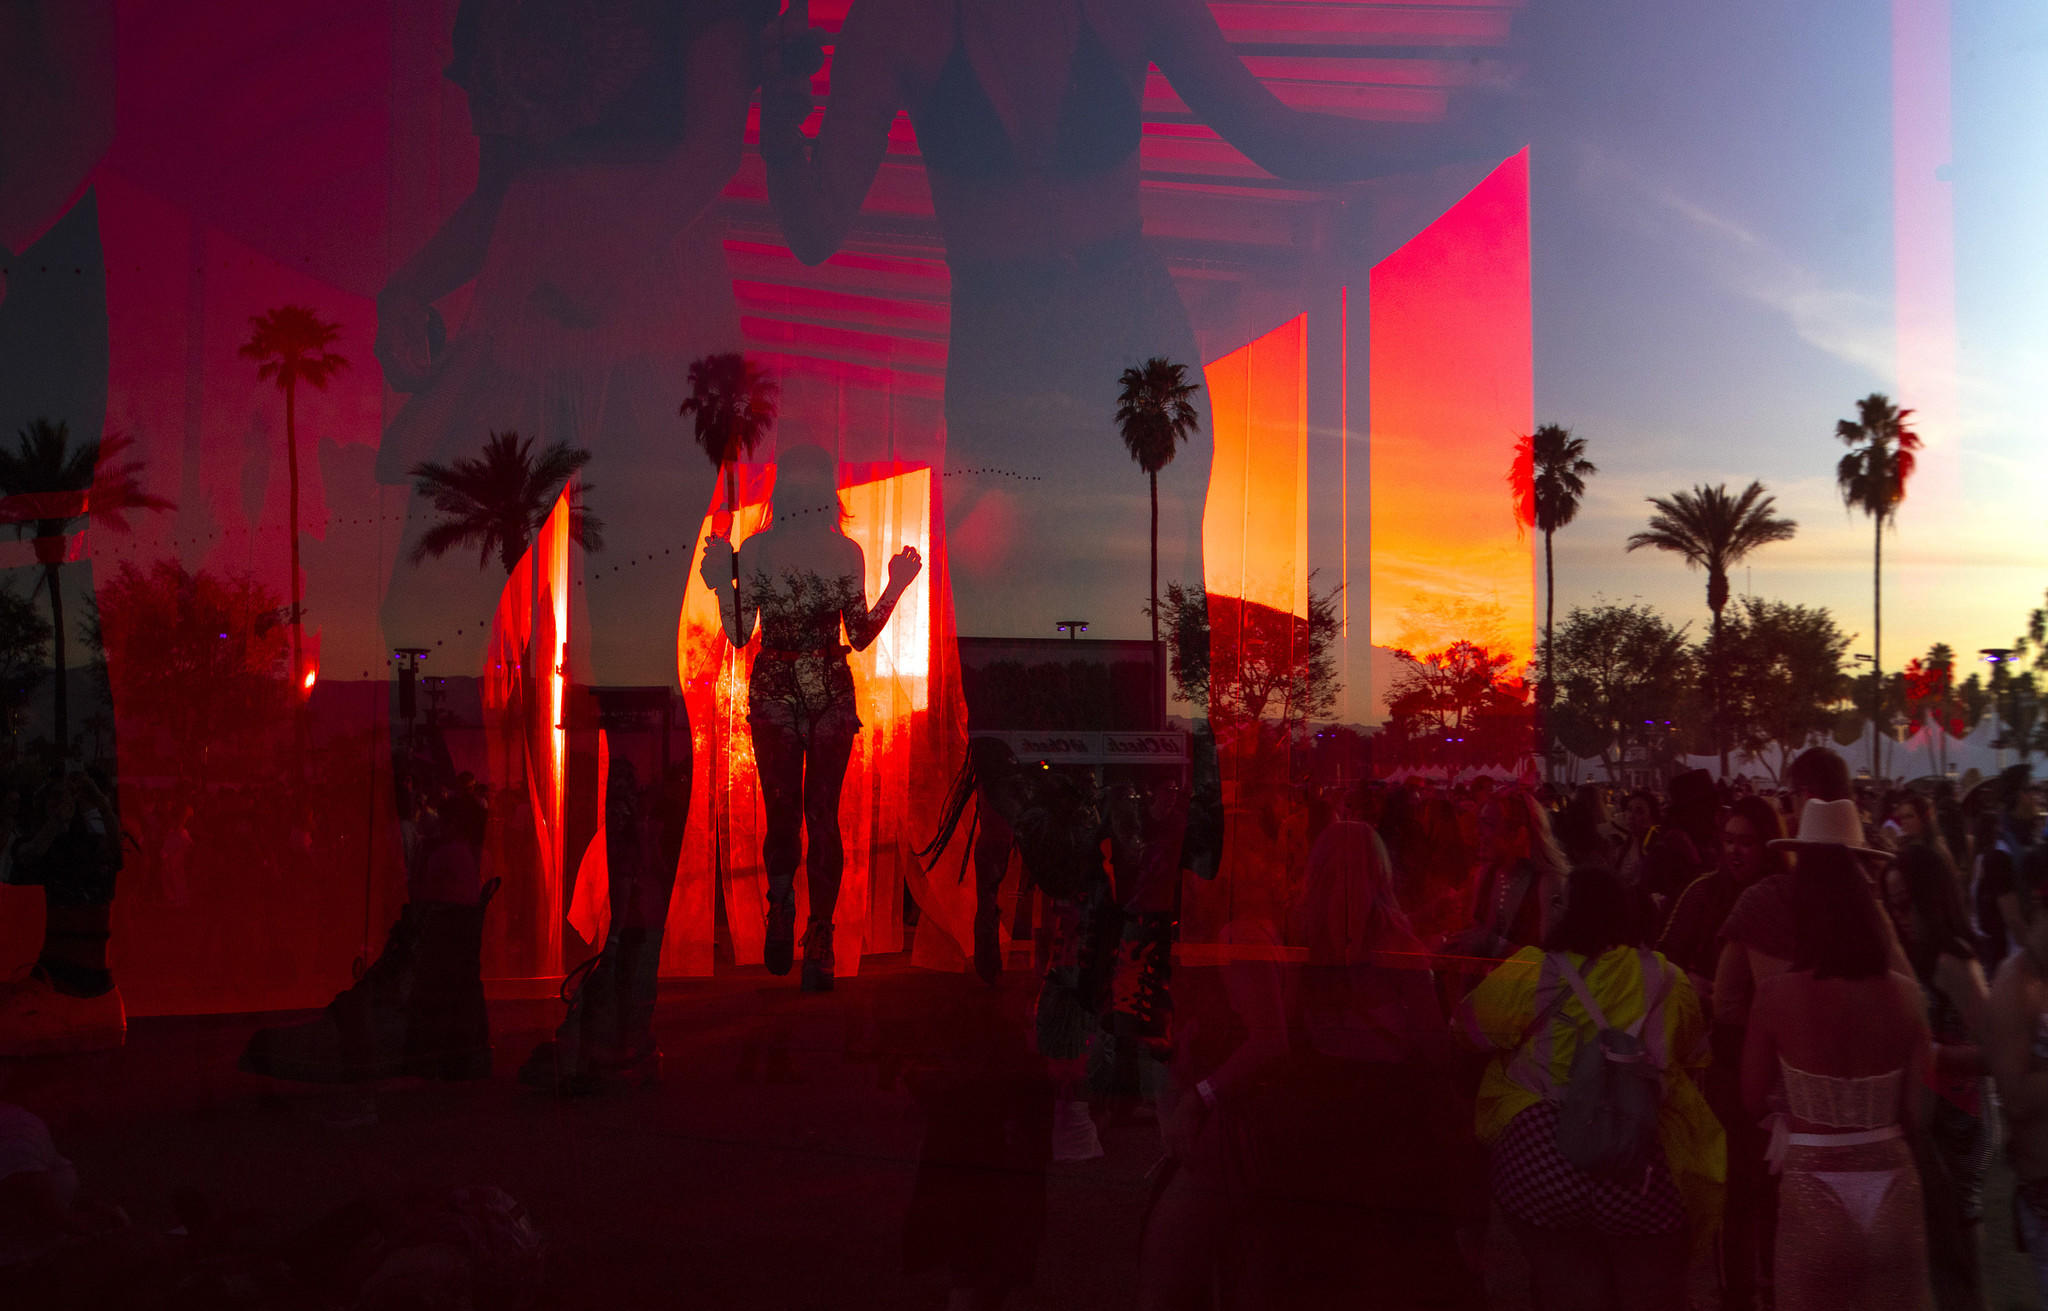 ICYMI: Scenes from week one of the Coachella Valley Music